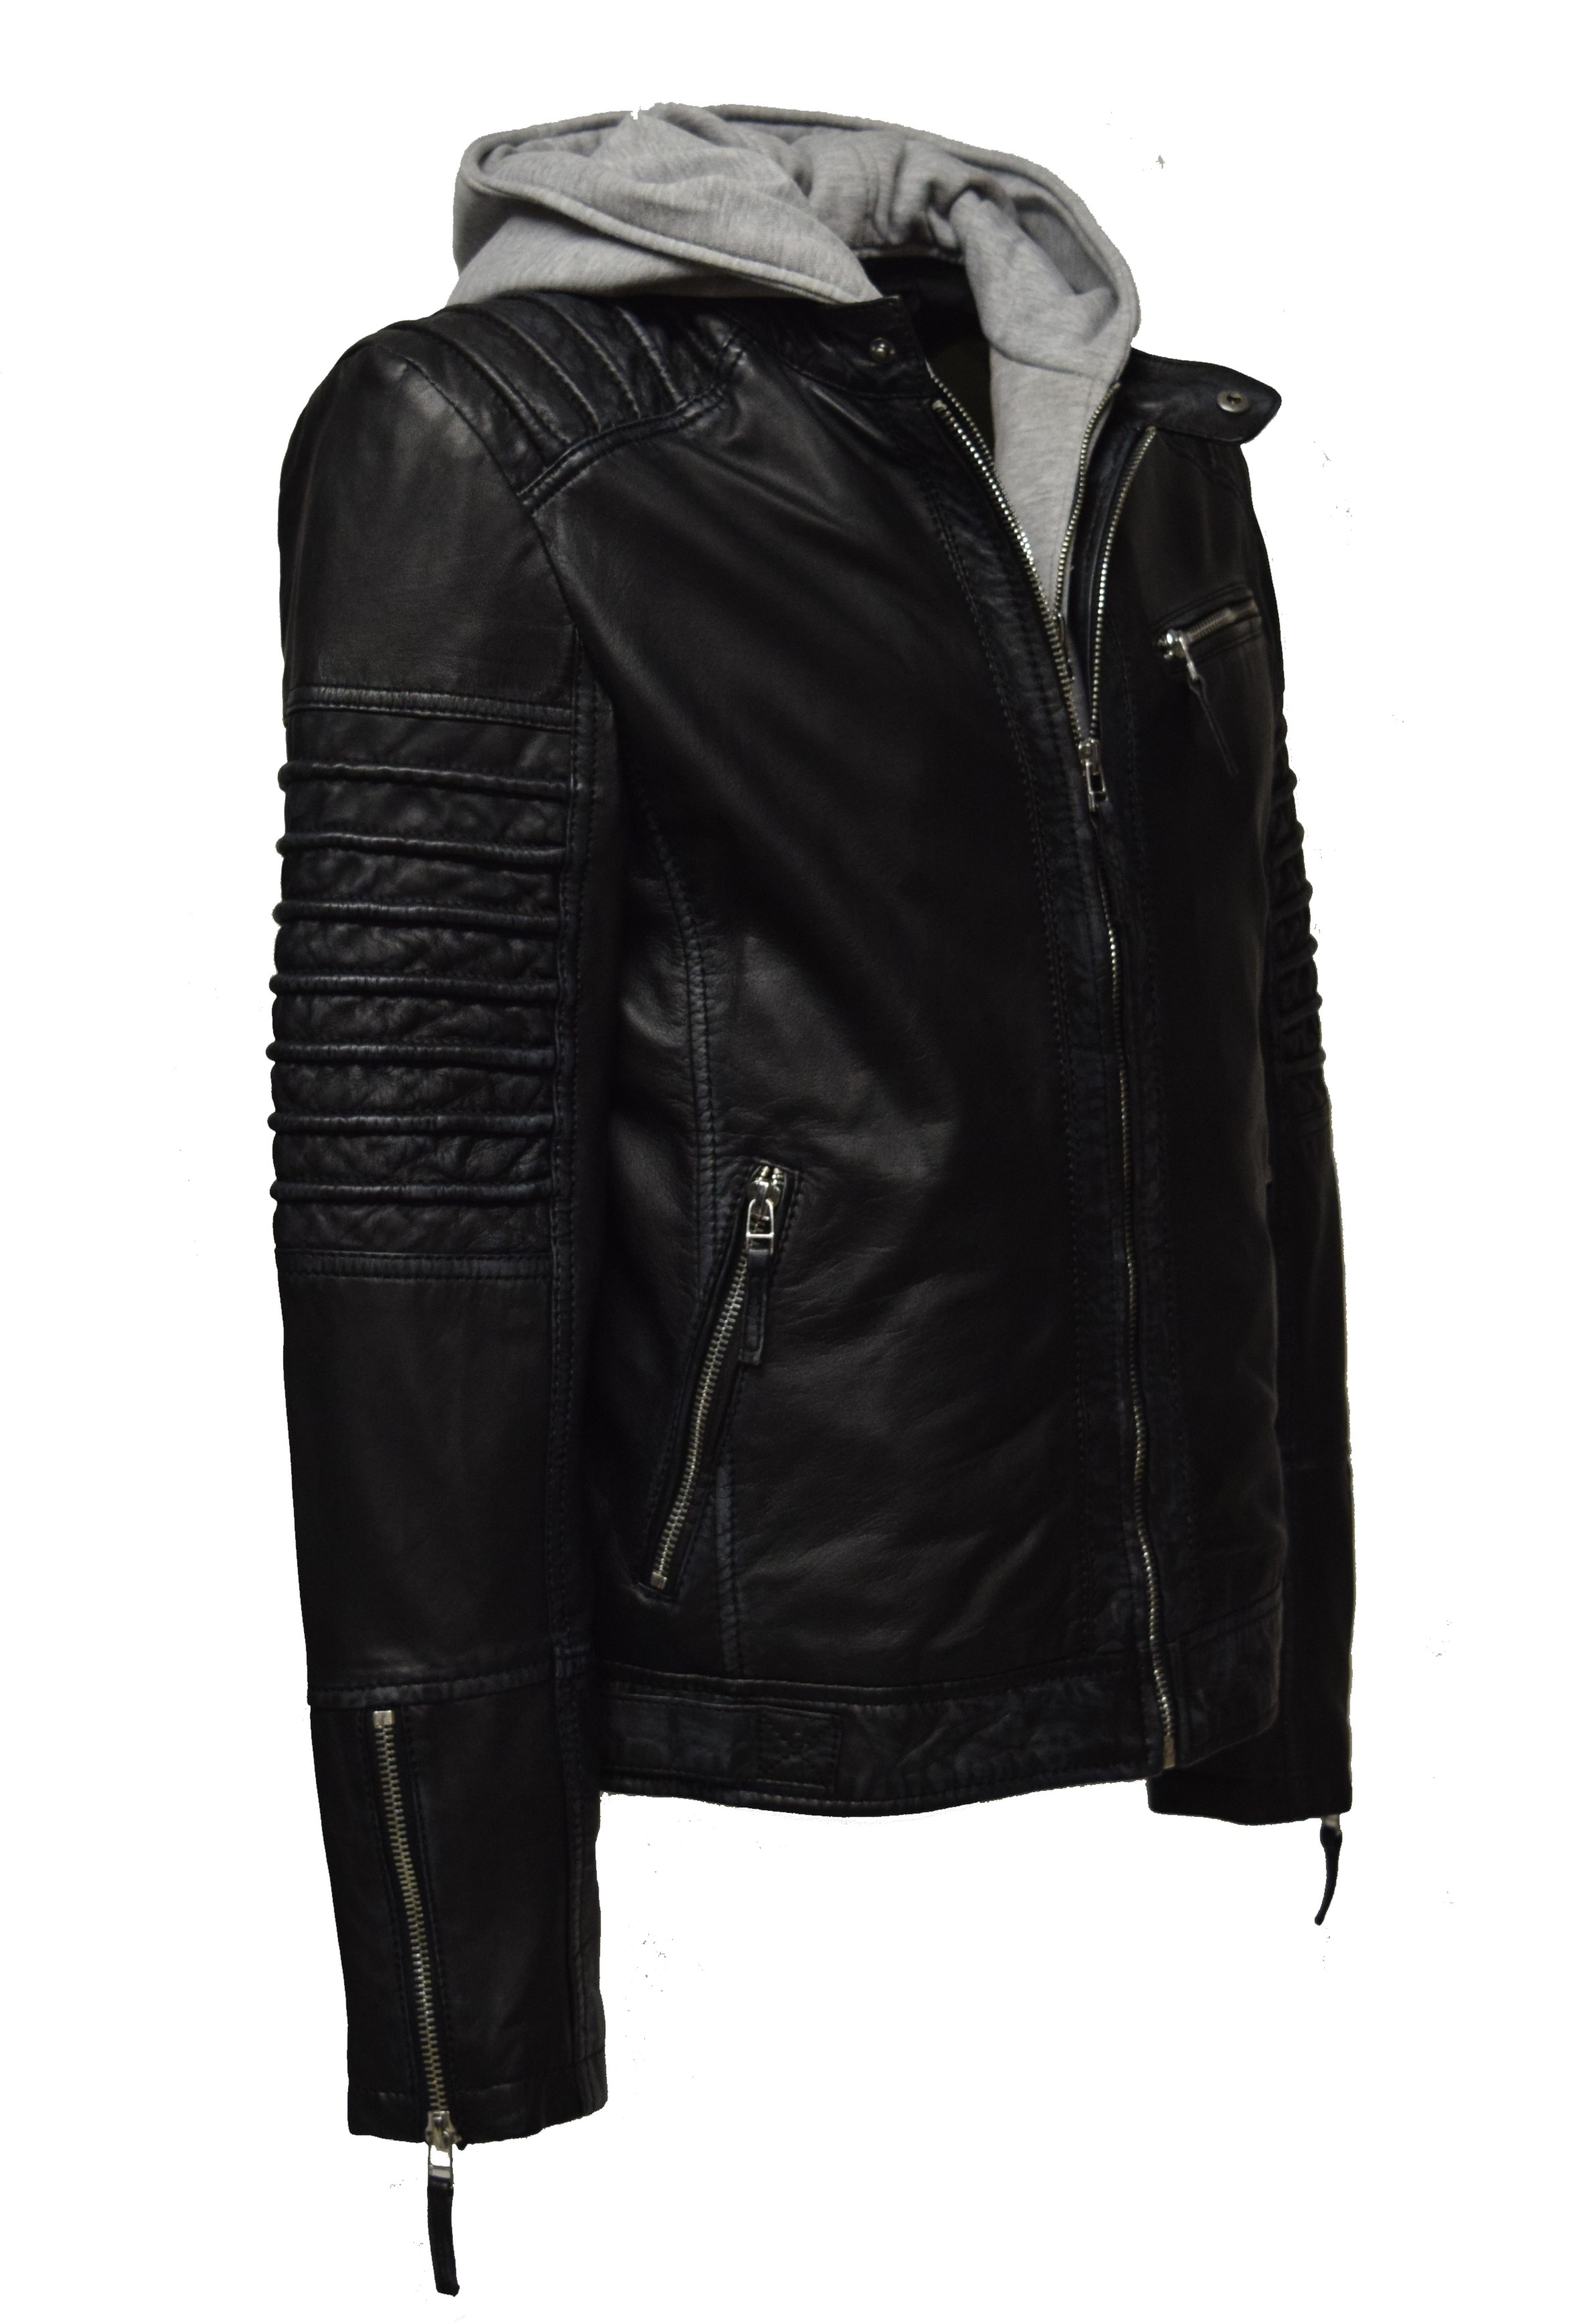 check out 09964 06518 Punchball Herren Lederjacke